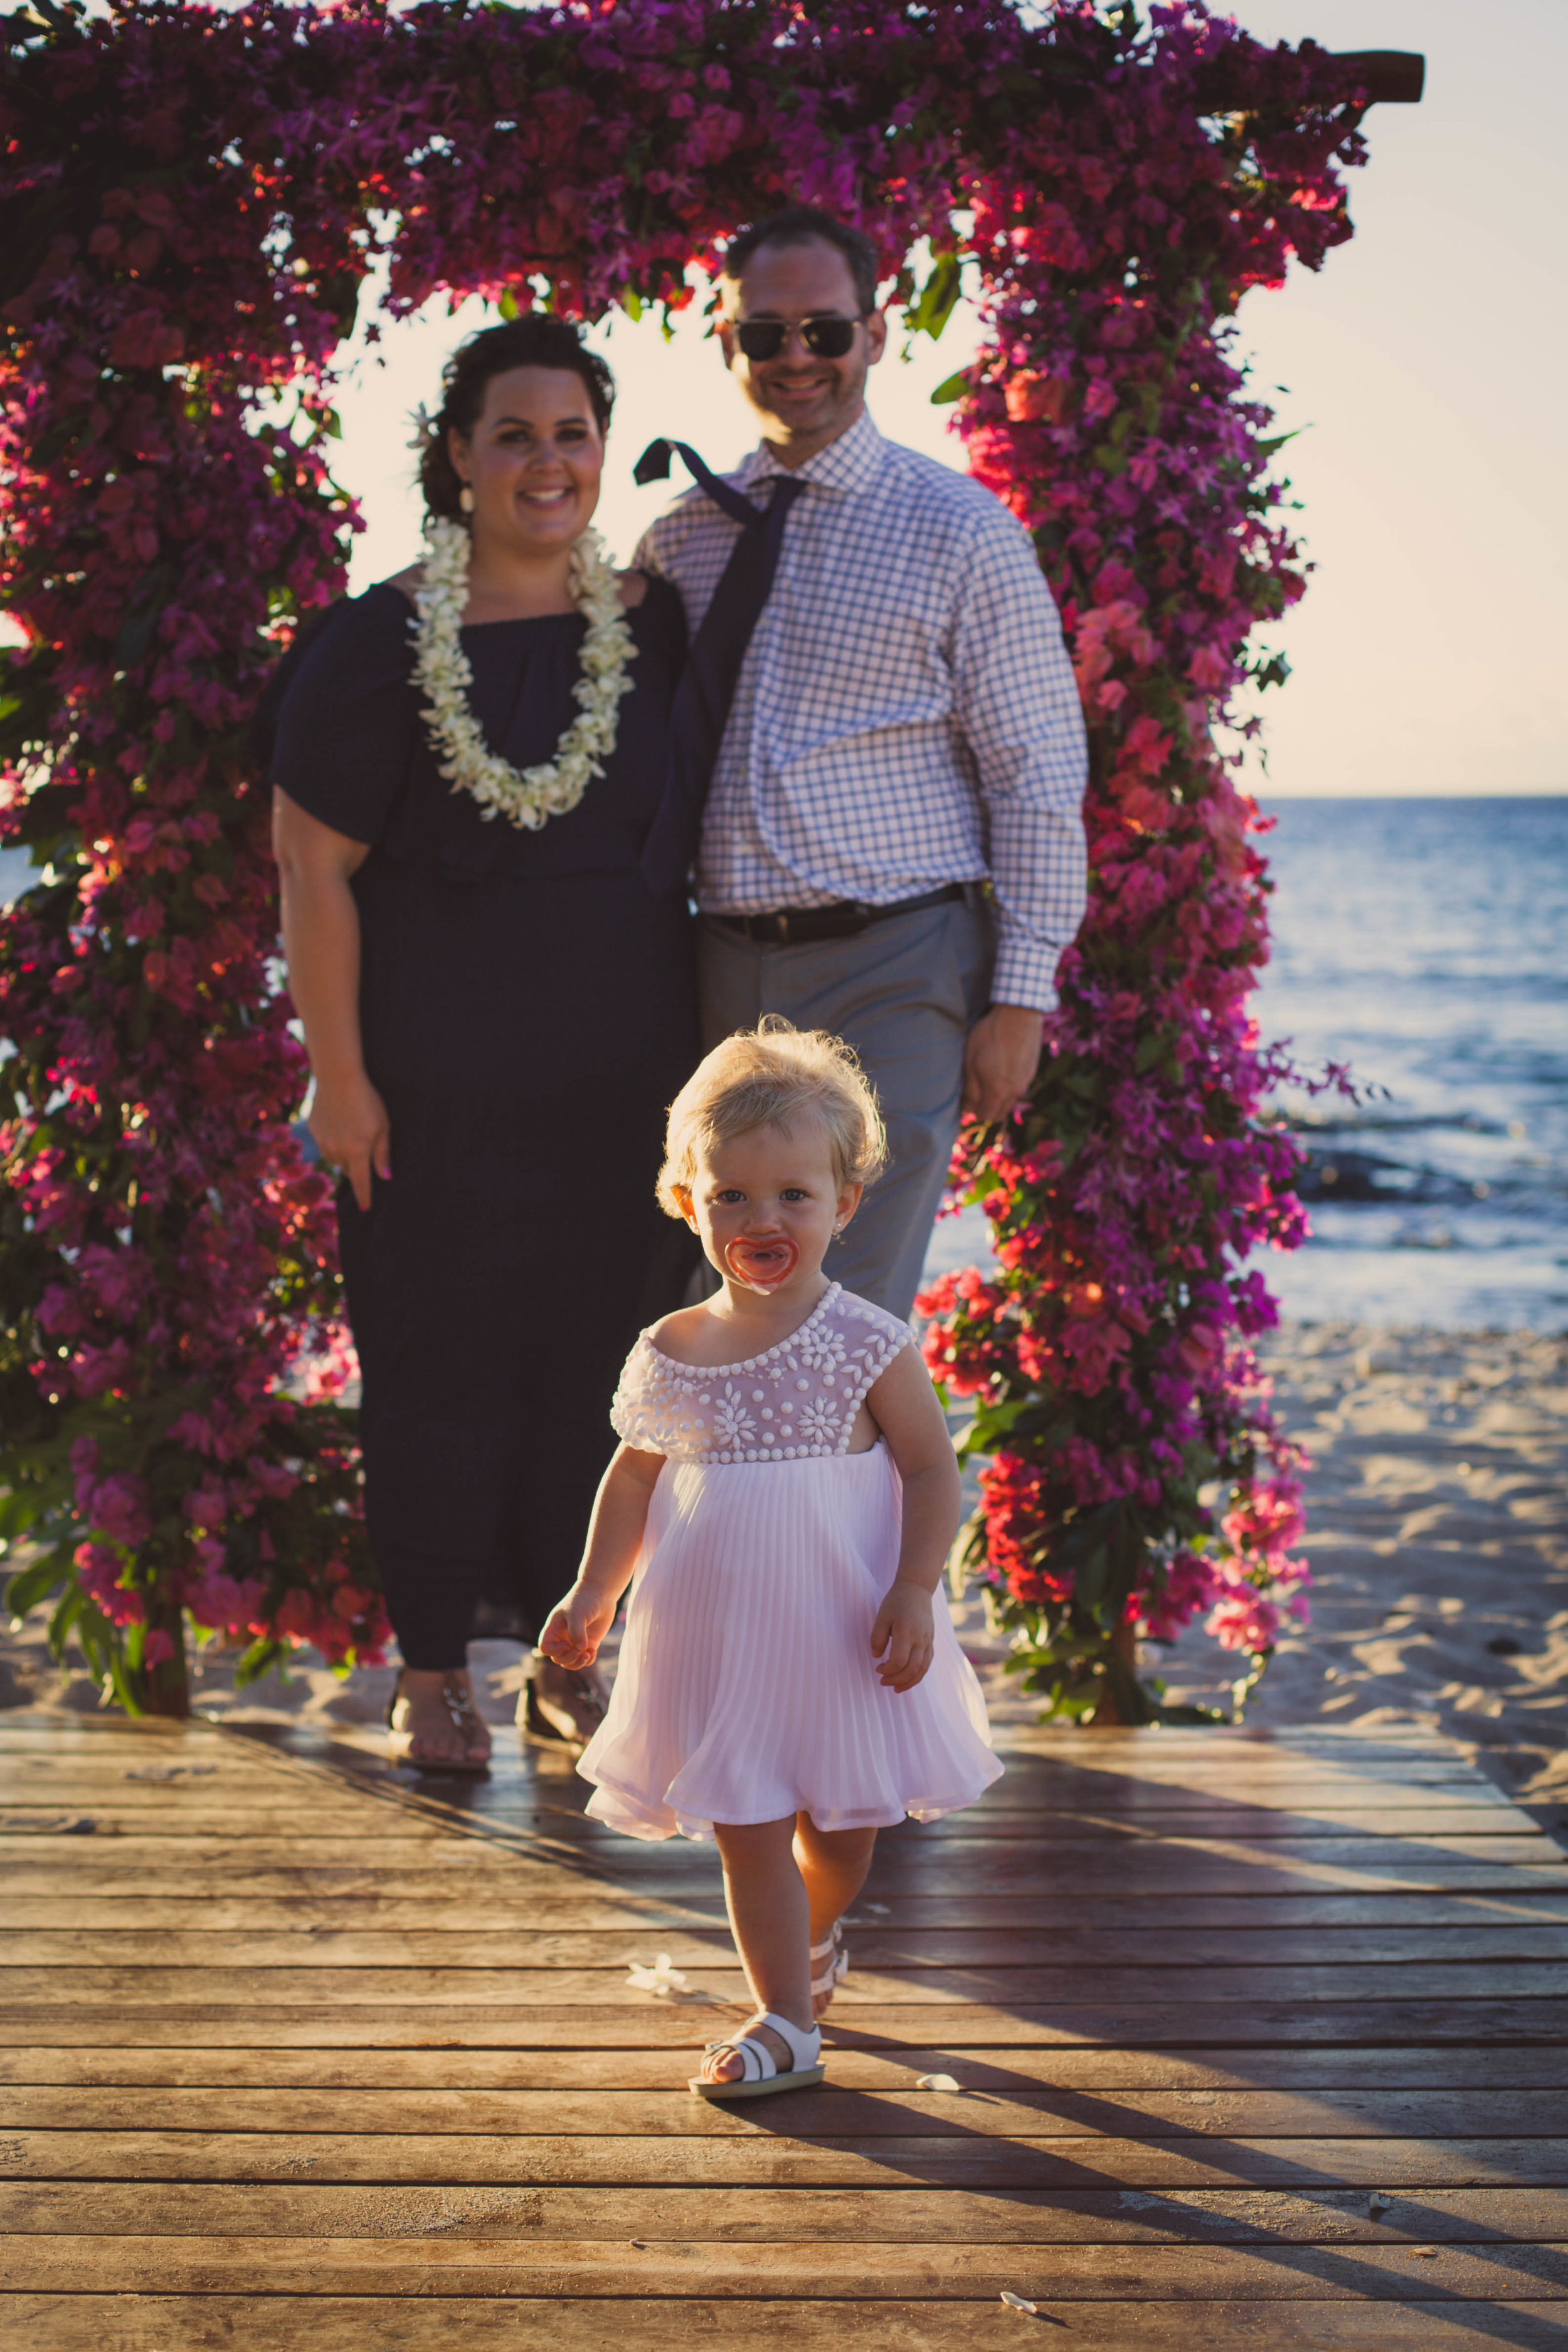 big island hawaii fairmont orchid beach wedding © kelilina photography 20170812183052-1.jpg